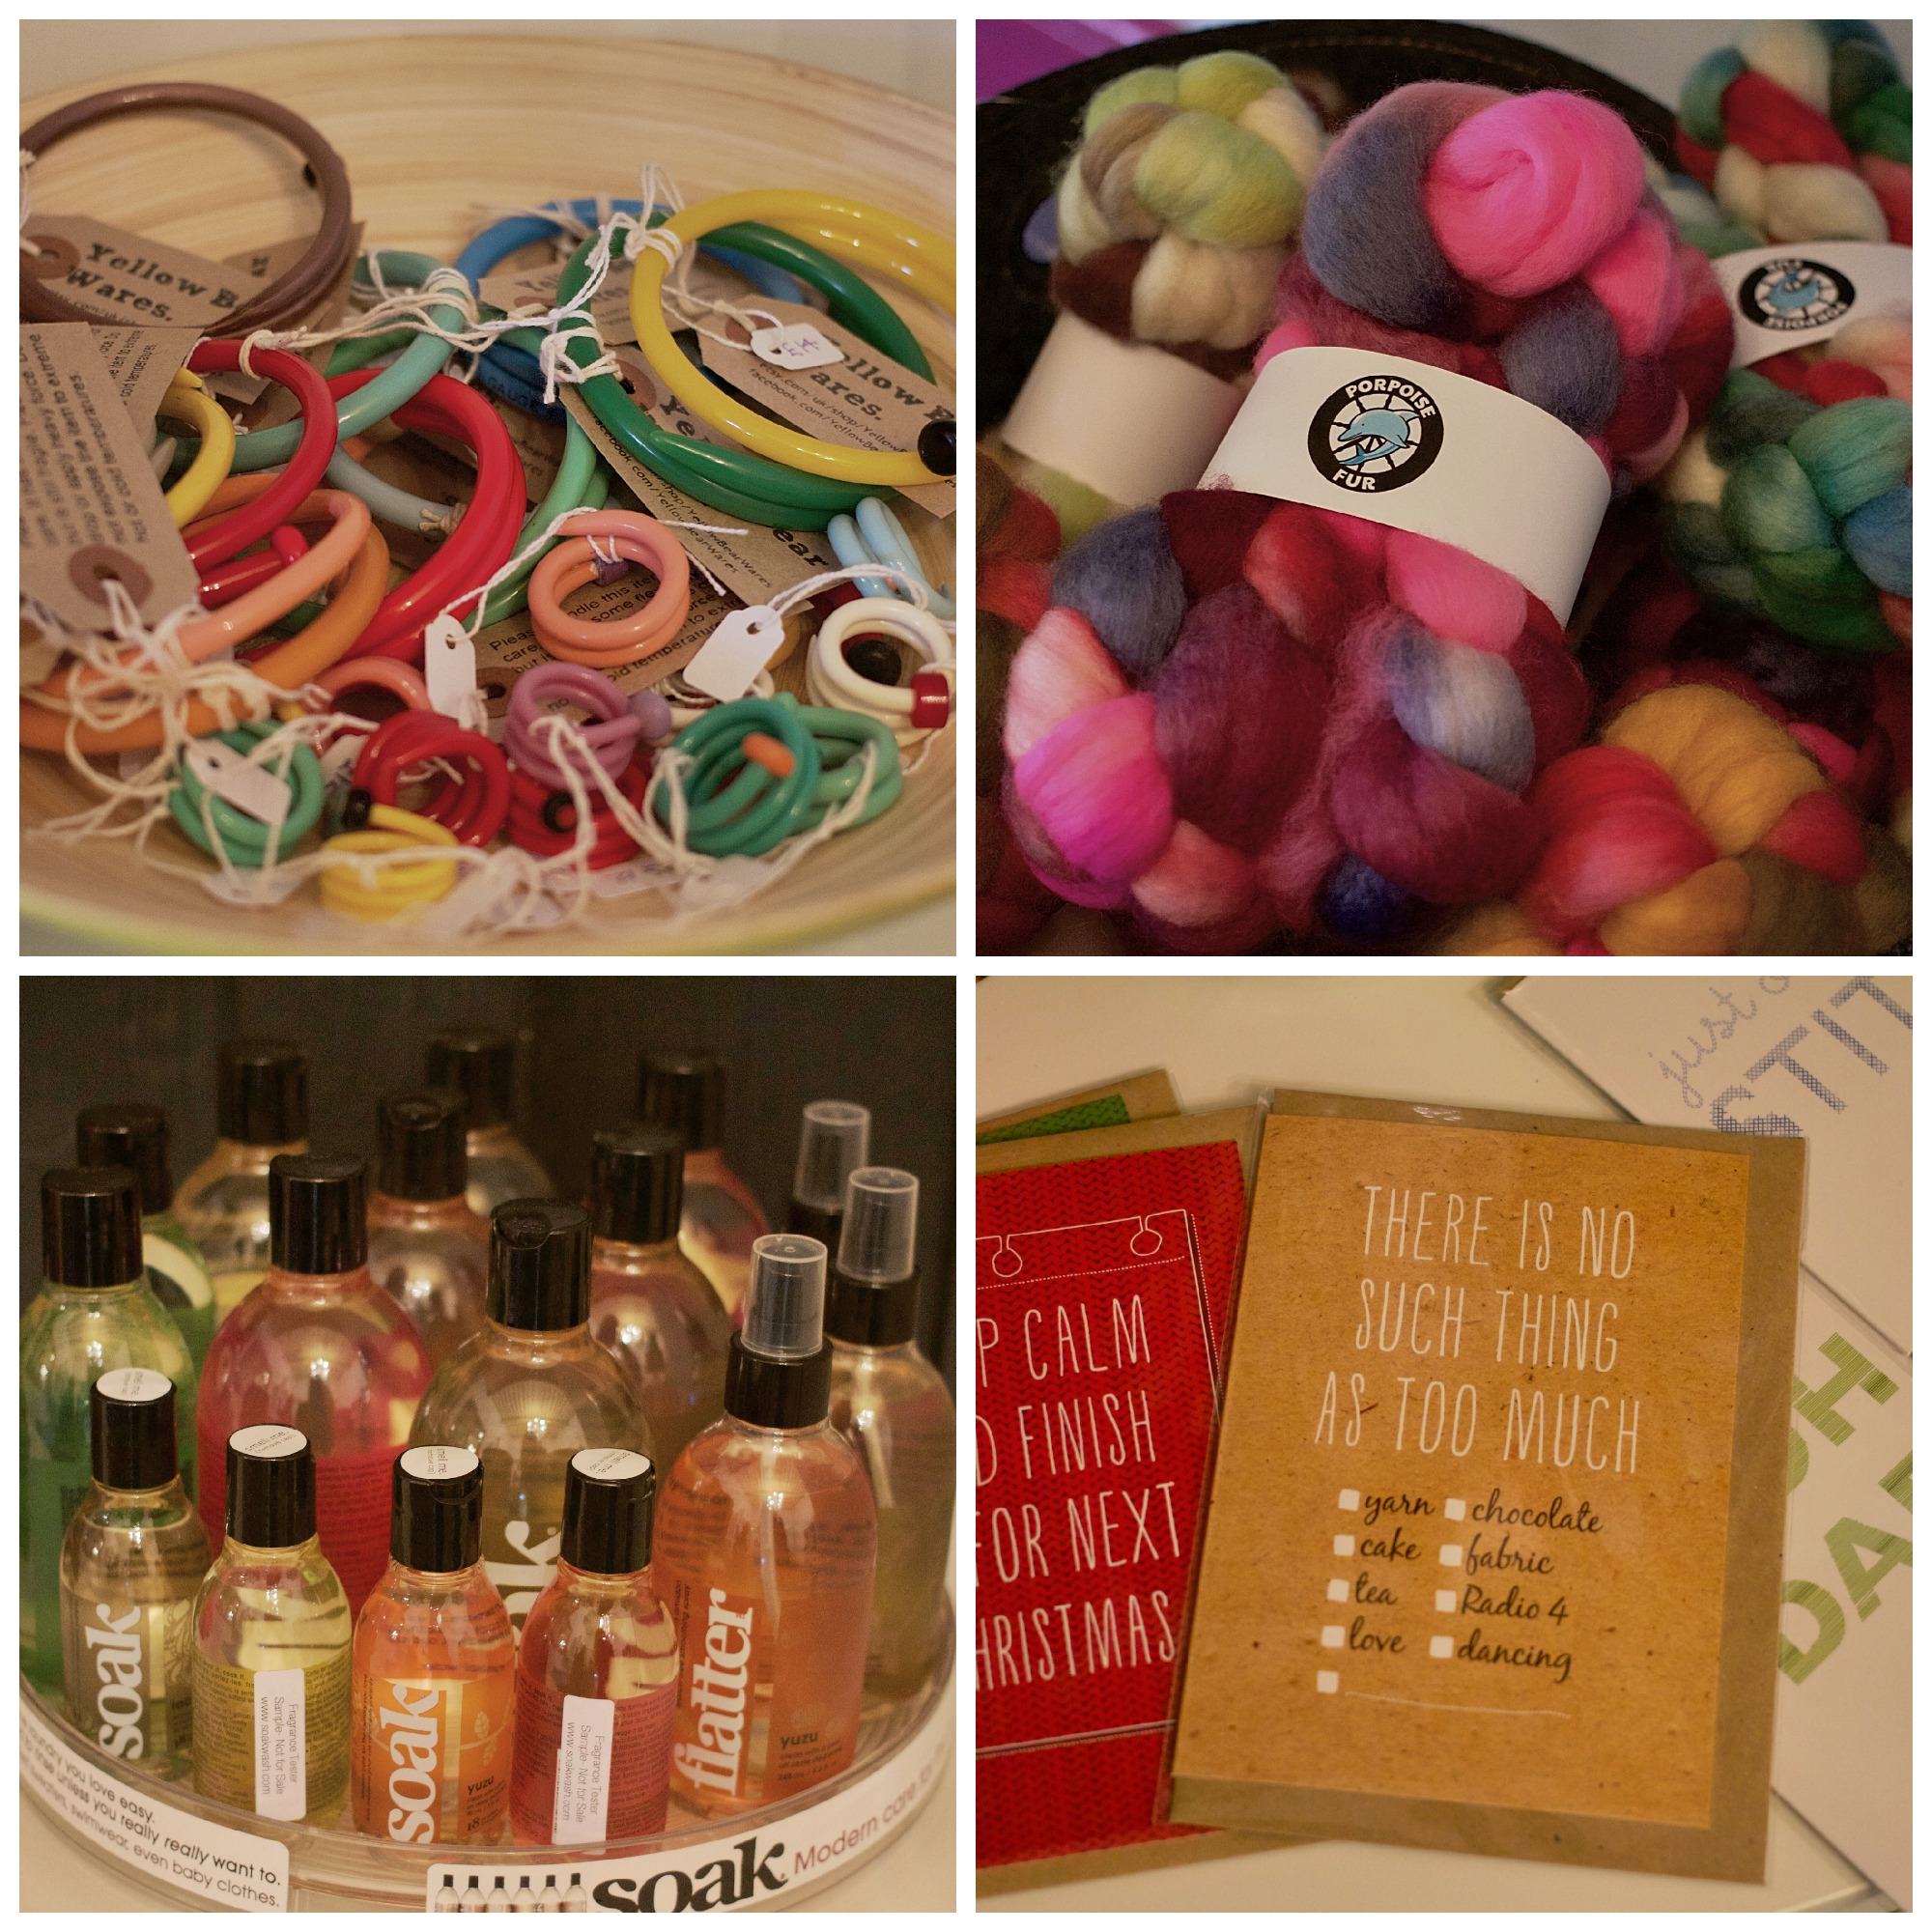 Some more of the lovely offerings for knitters and fibre-folk at A Yarn Story